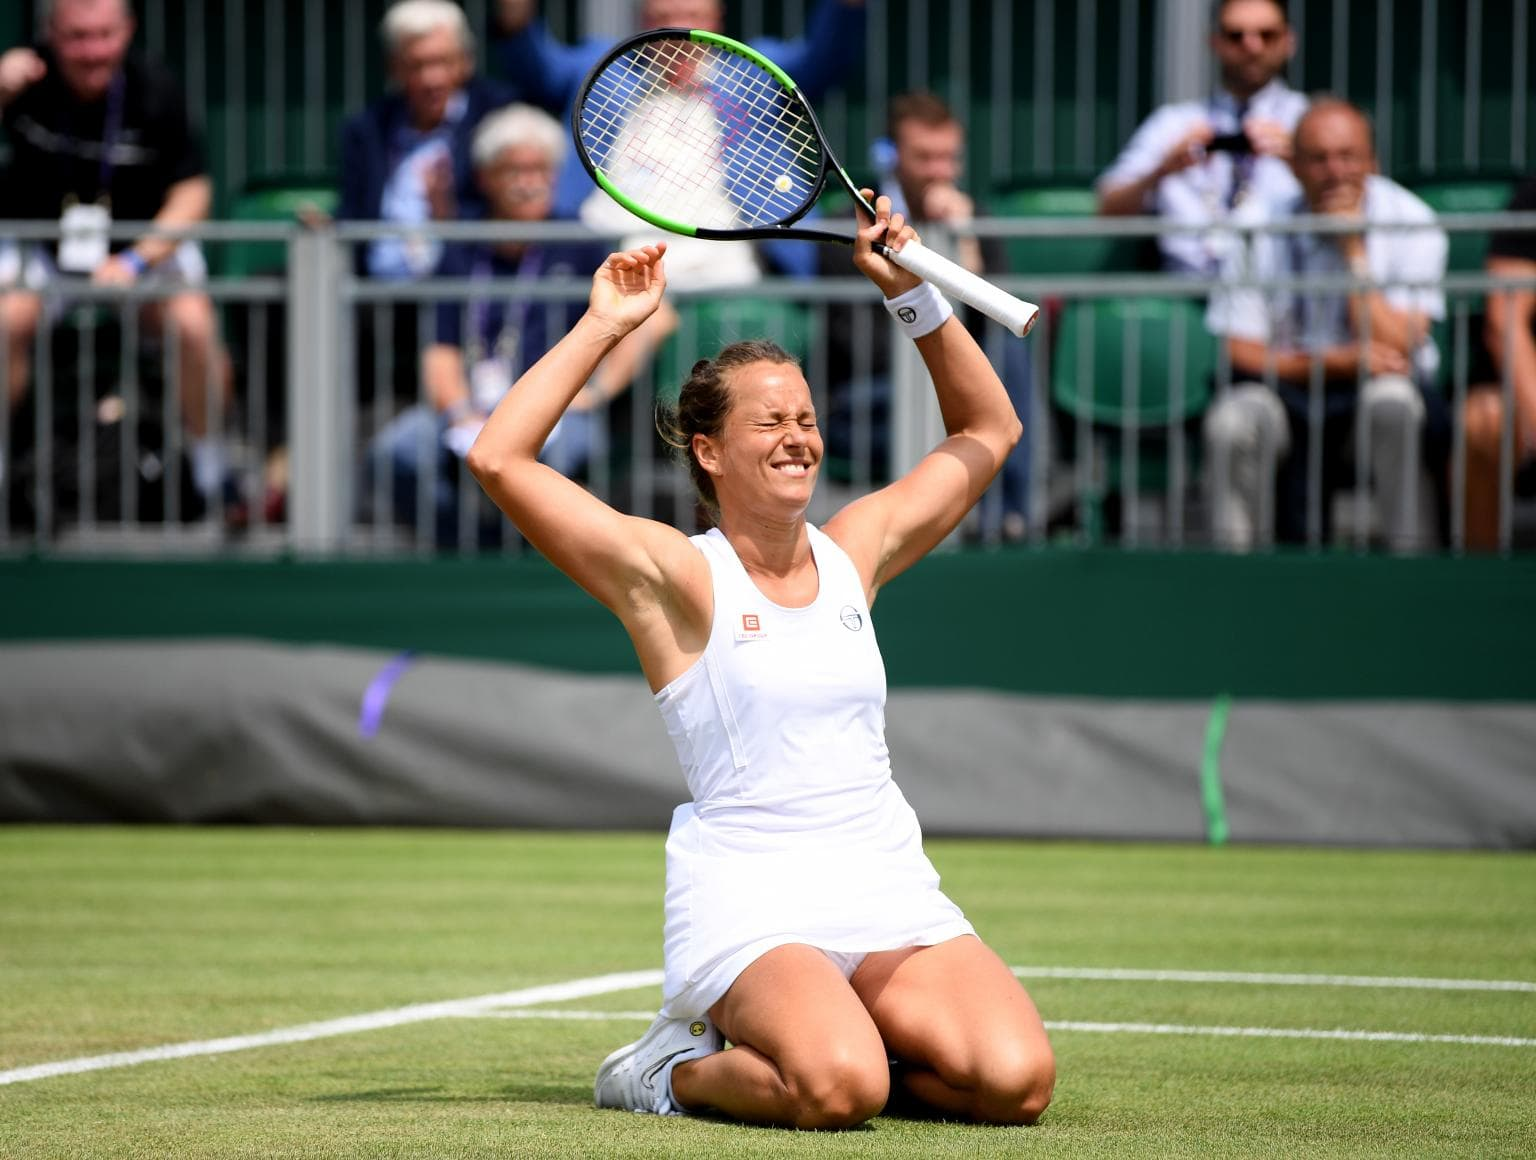 Barbora Strycova vs Johanna Konta Tennis Betting Tips